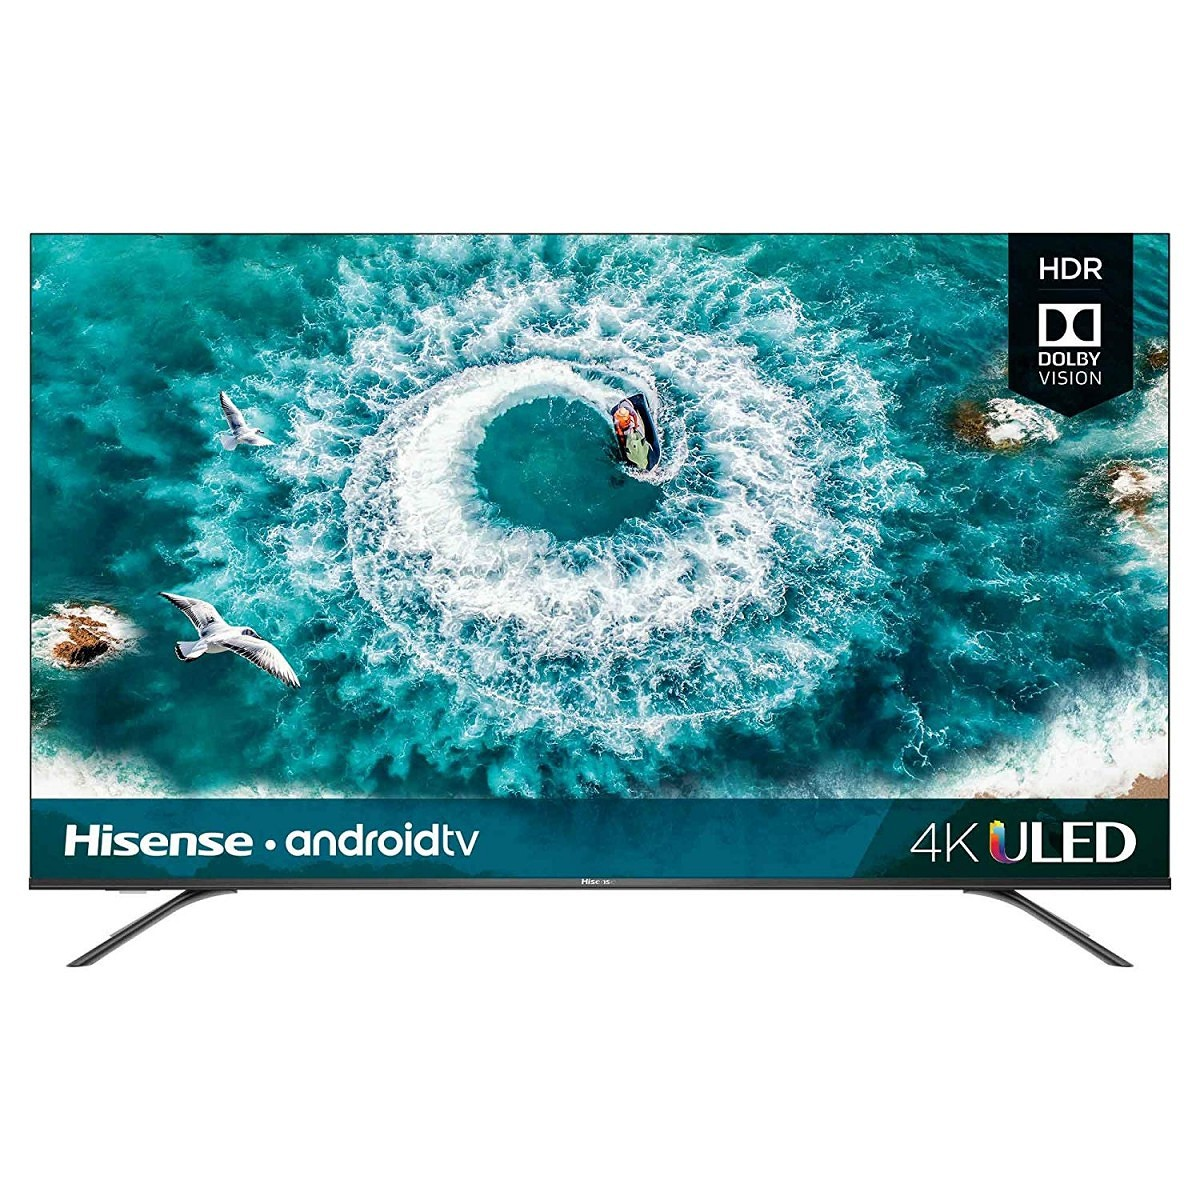 Hisense H8F and H9F are ULED TVs with Android TV launched in